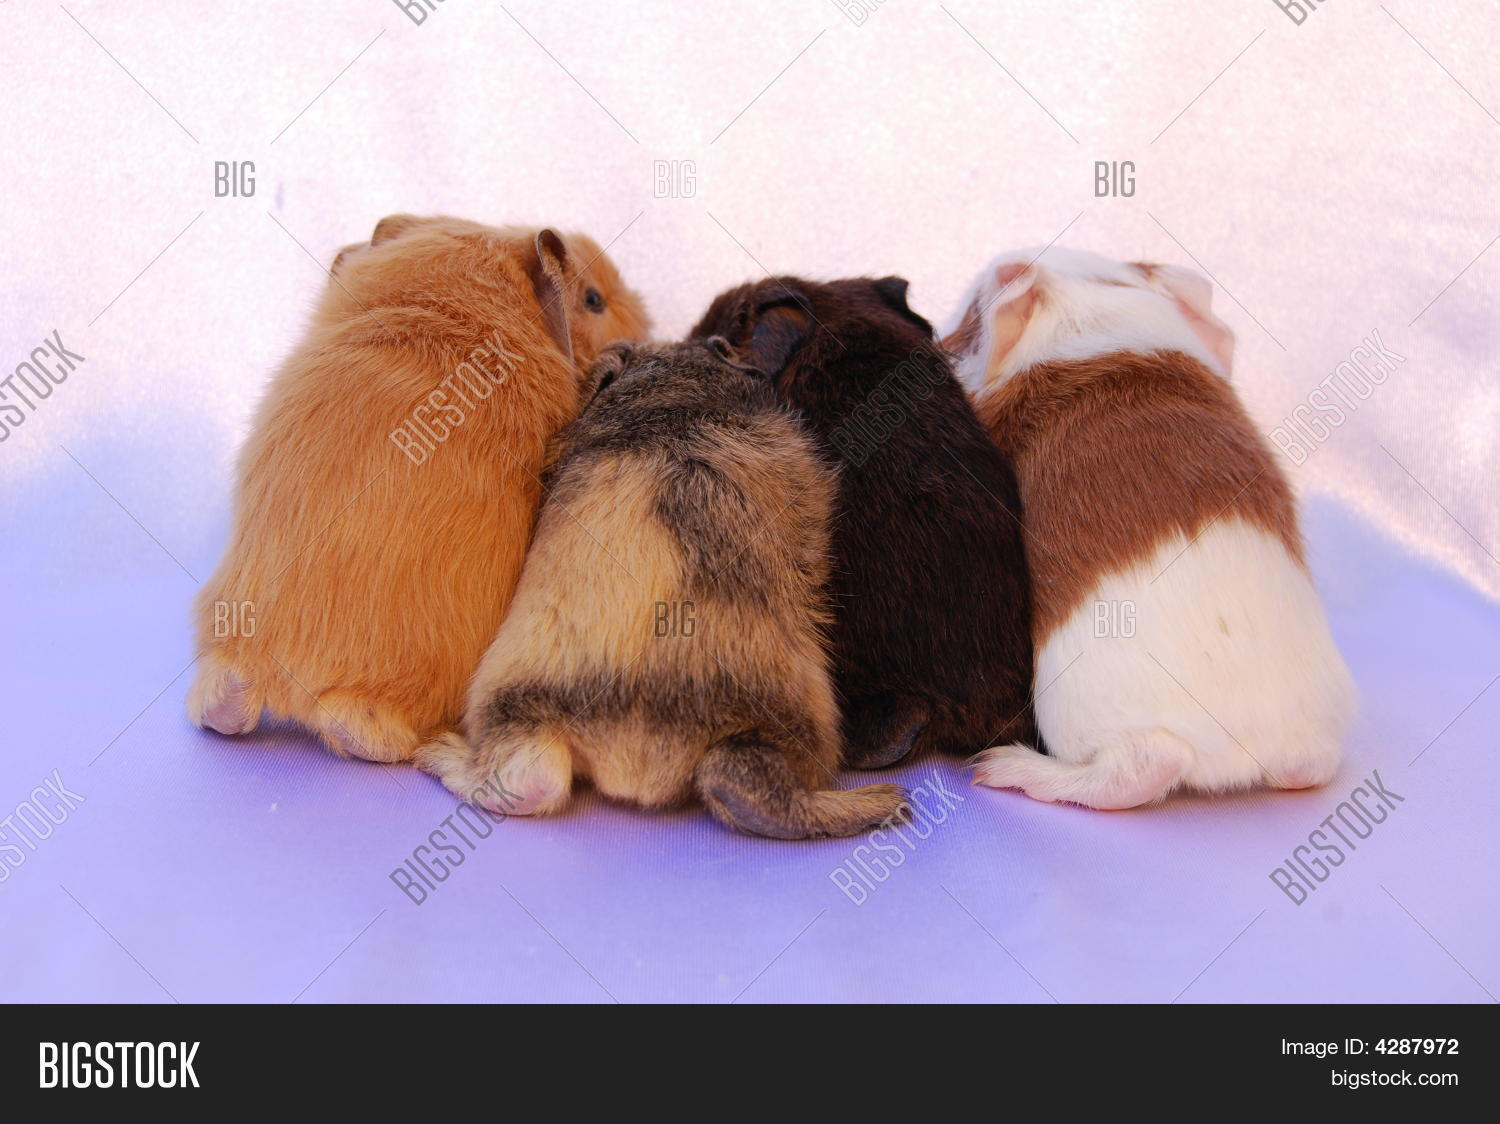 Cute baby guinea pig butts image photo bigstock